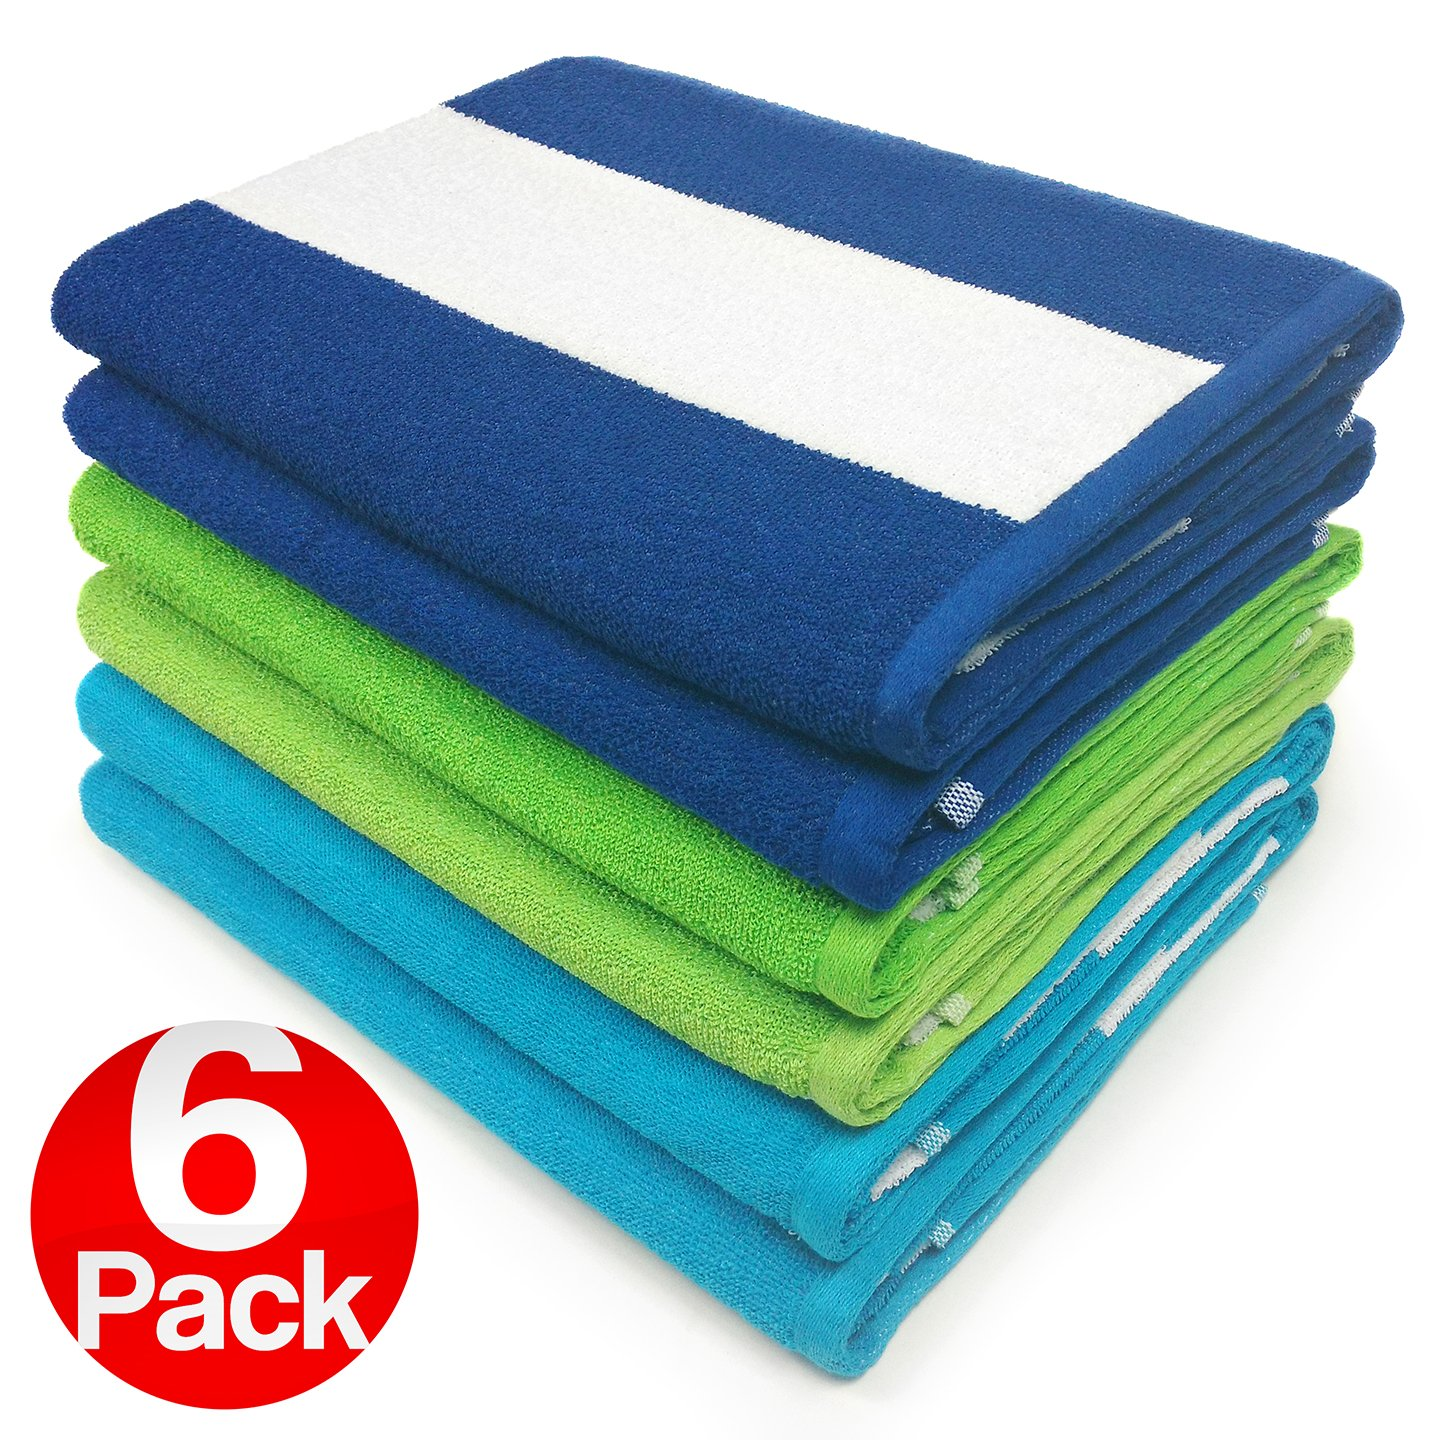 Ben Kaufman Sales KAUFMAN - Cabana Terry Loop Towel 6-Pack BGT - 30in x 60in by Ben Kaufman Sales